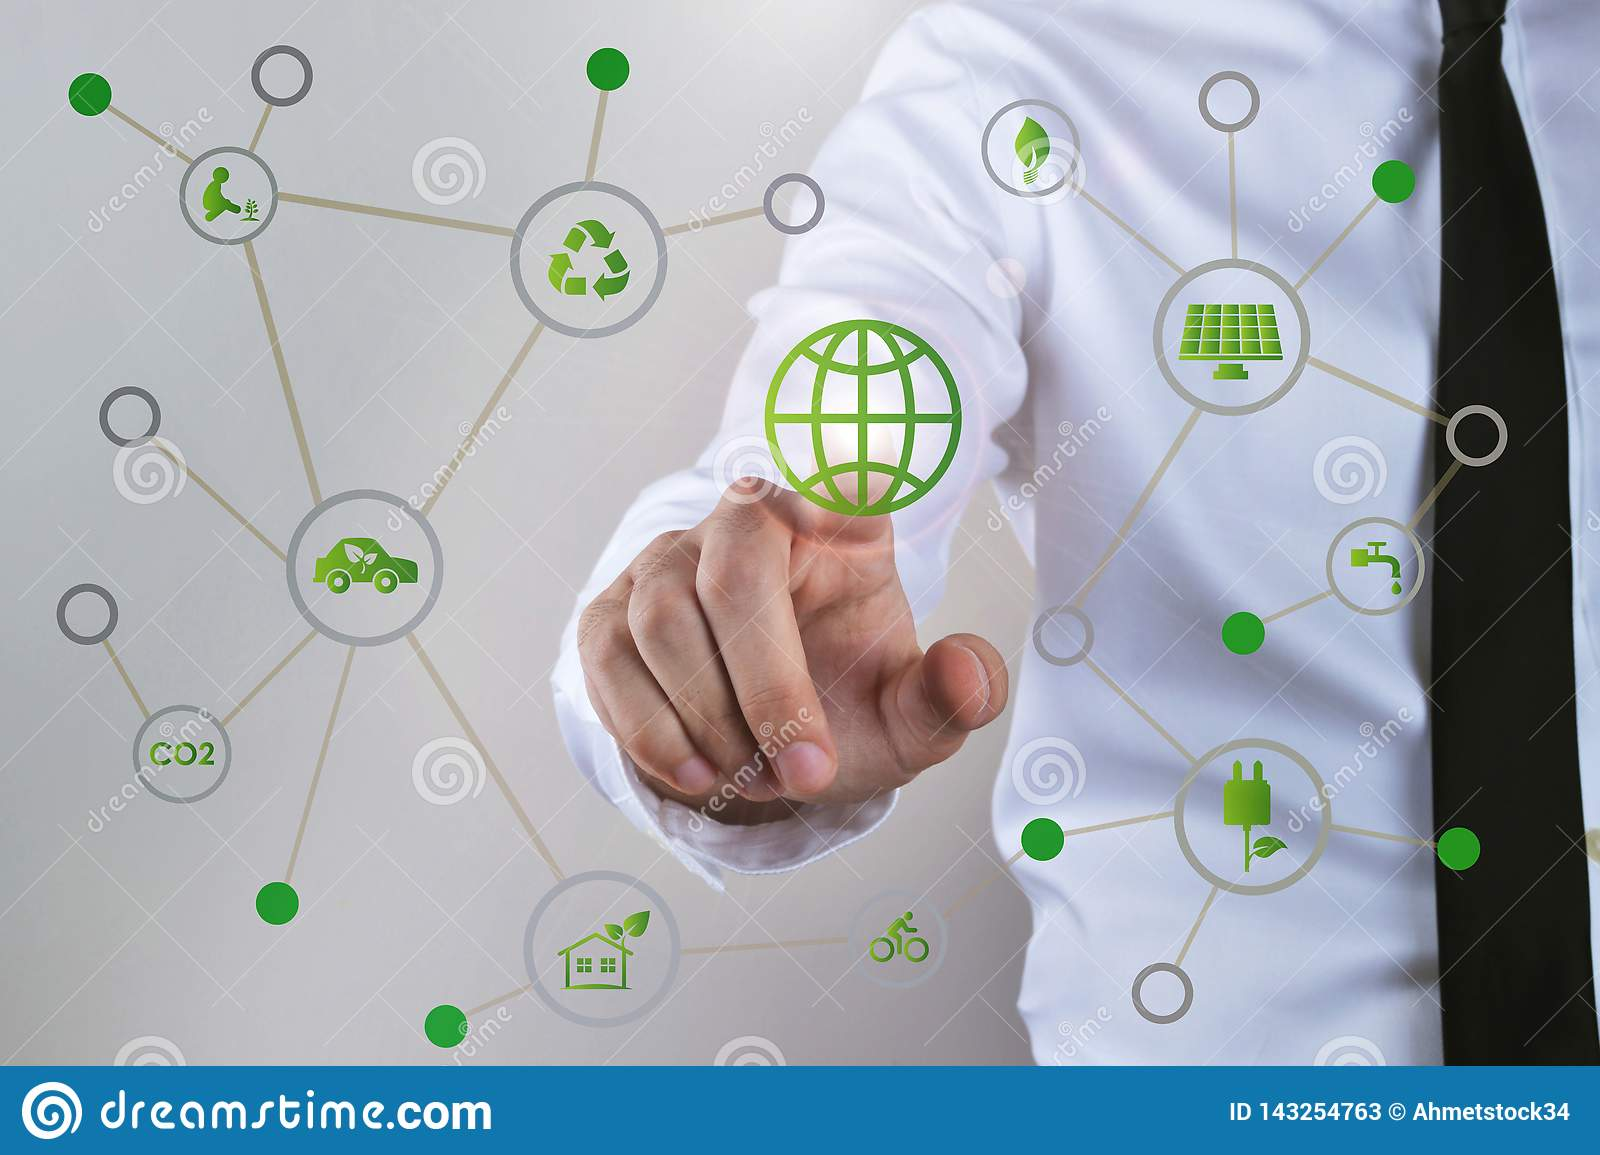 Businessman touch screen concept, energy, technology, power and recycling